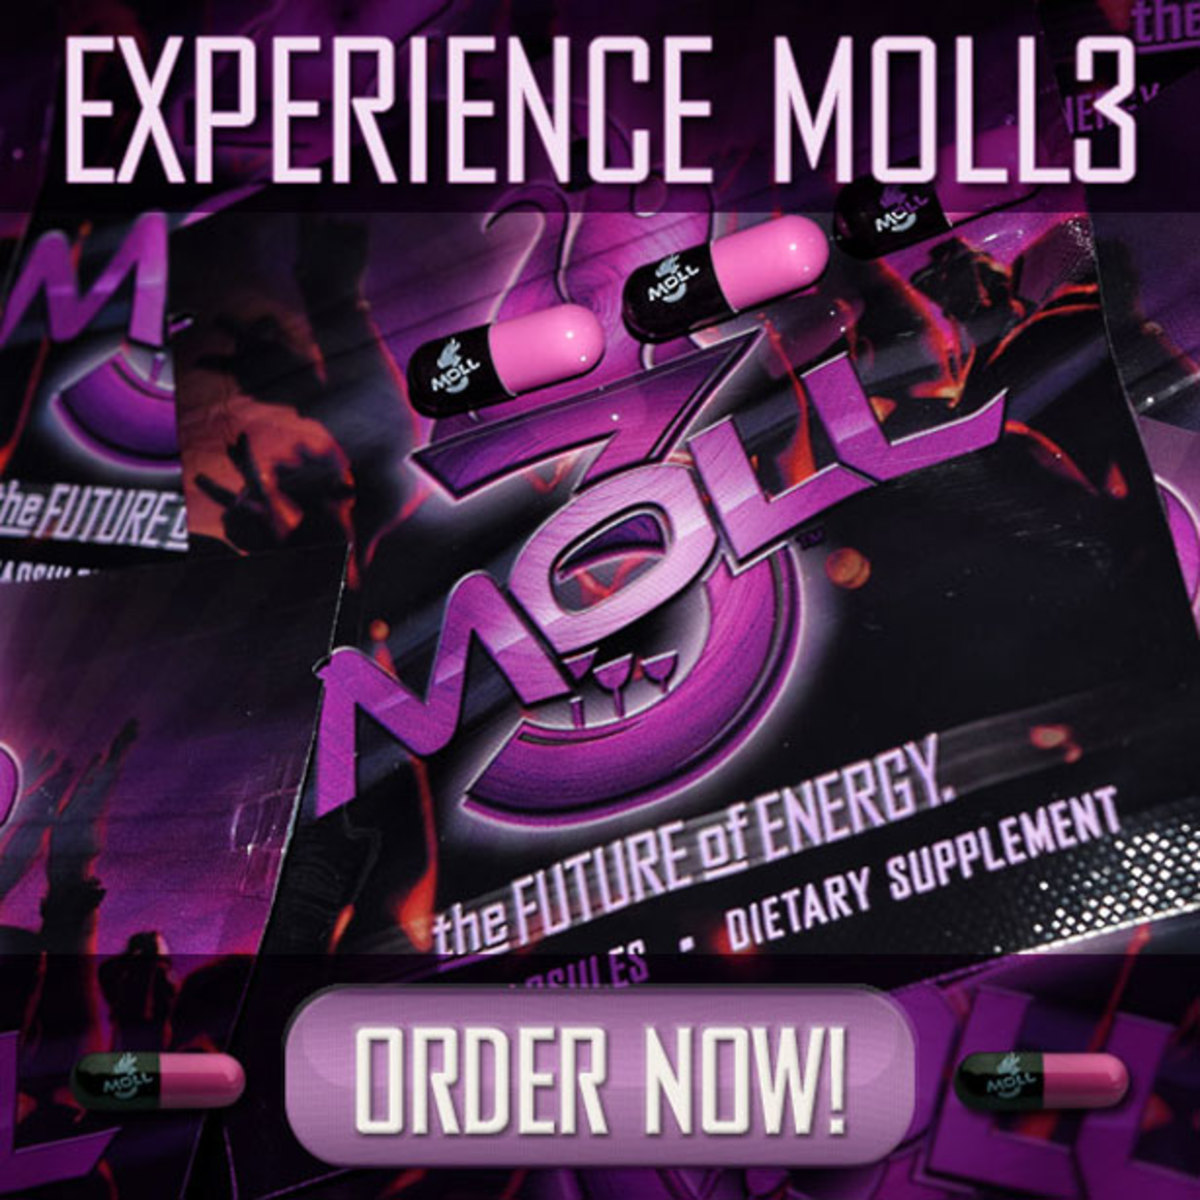 Does Moll3 Push The Limits? New Energy Supplement Uses Direct Drug Reference To Market Product